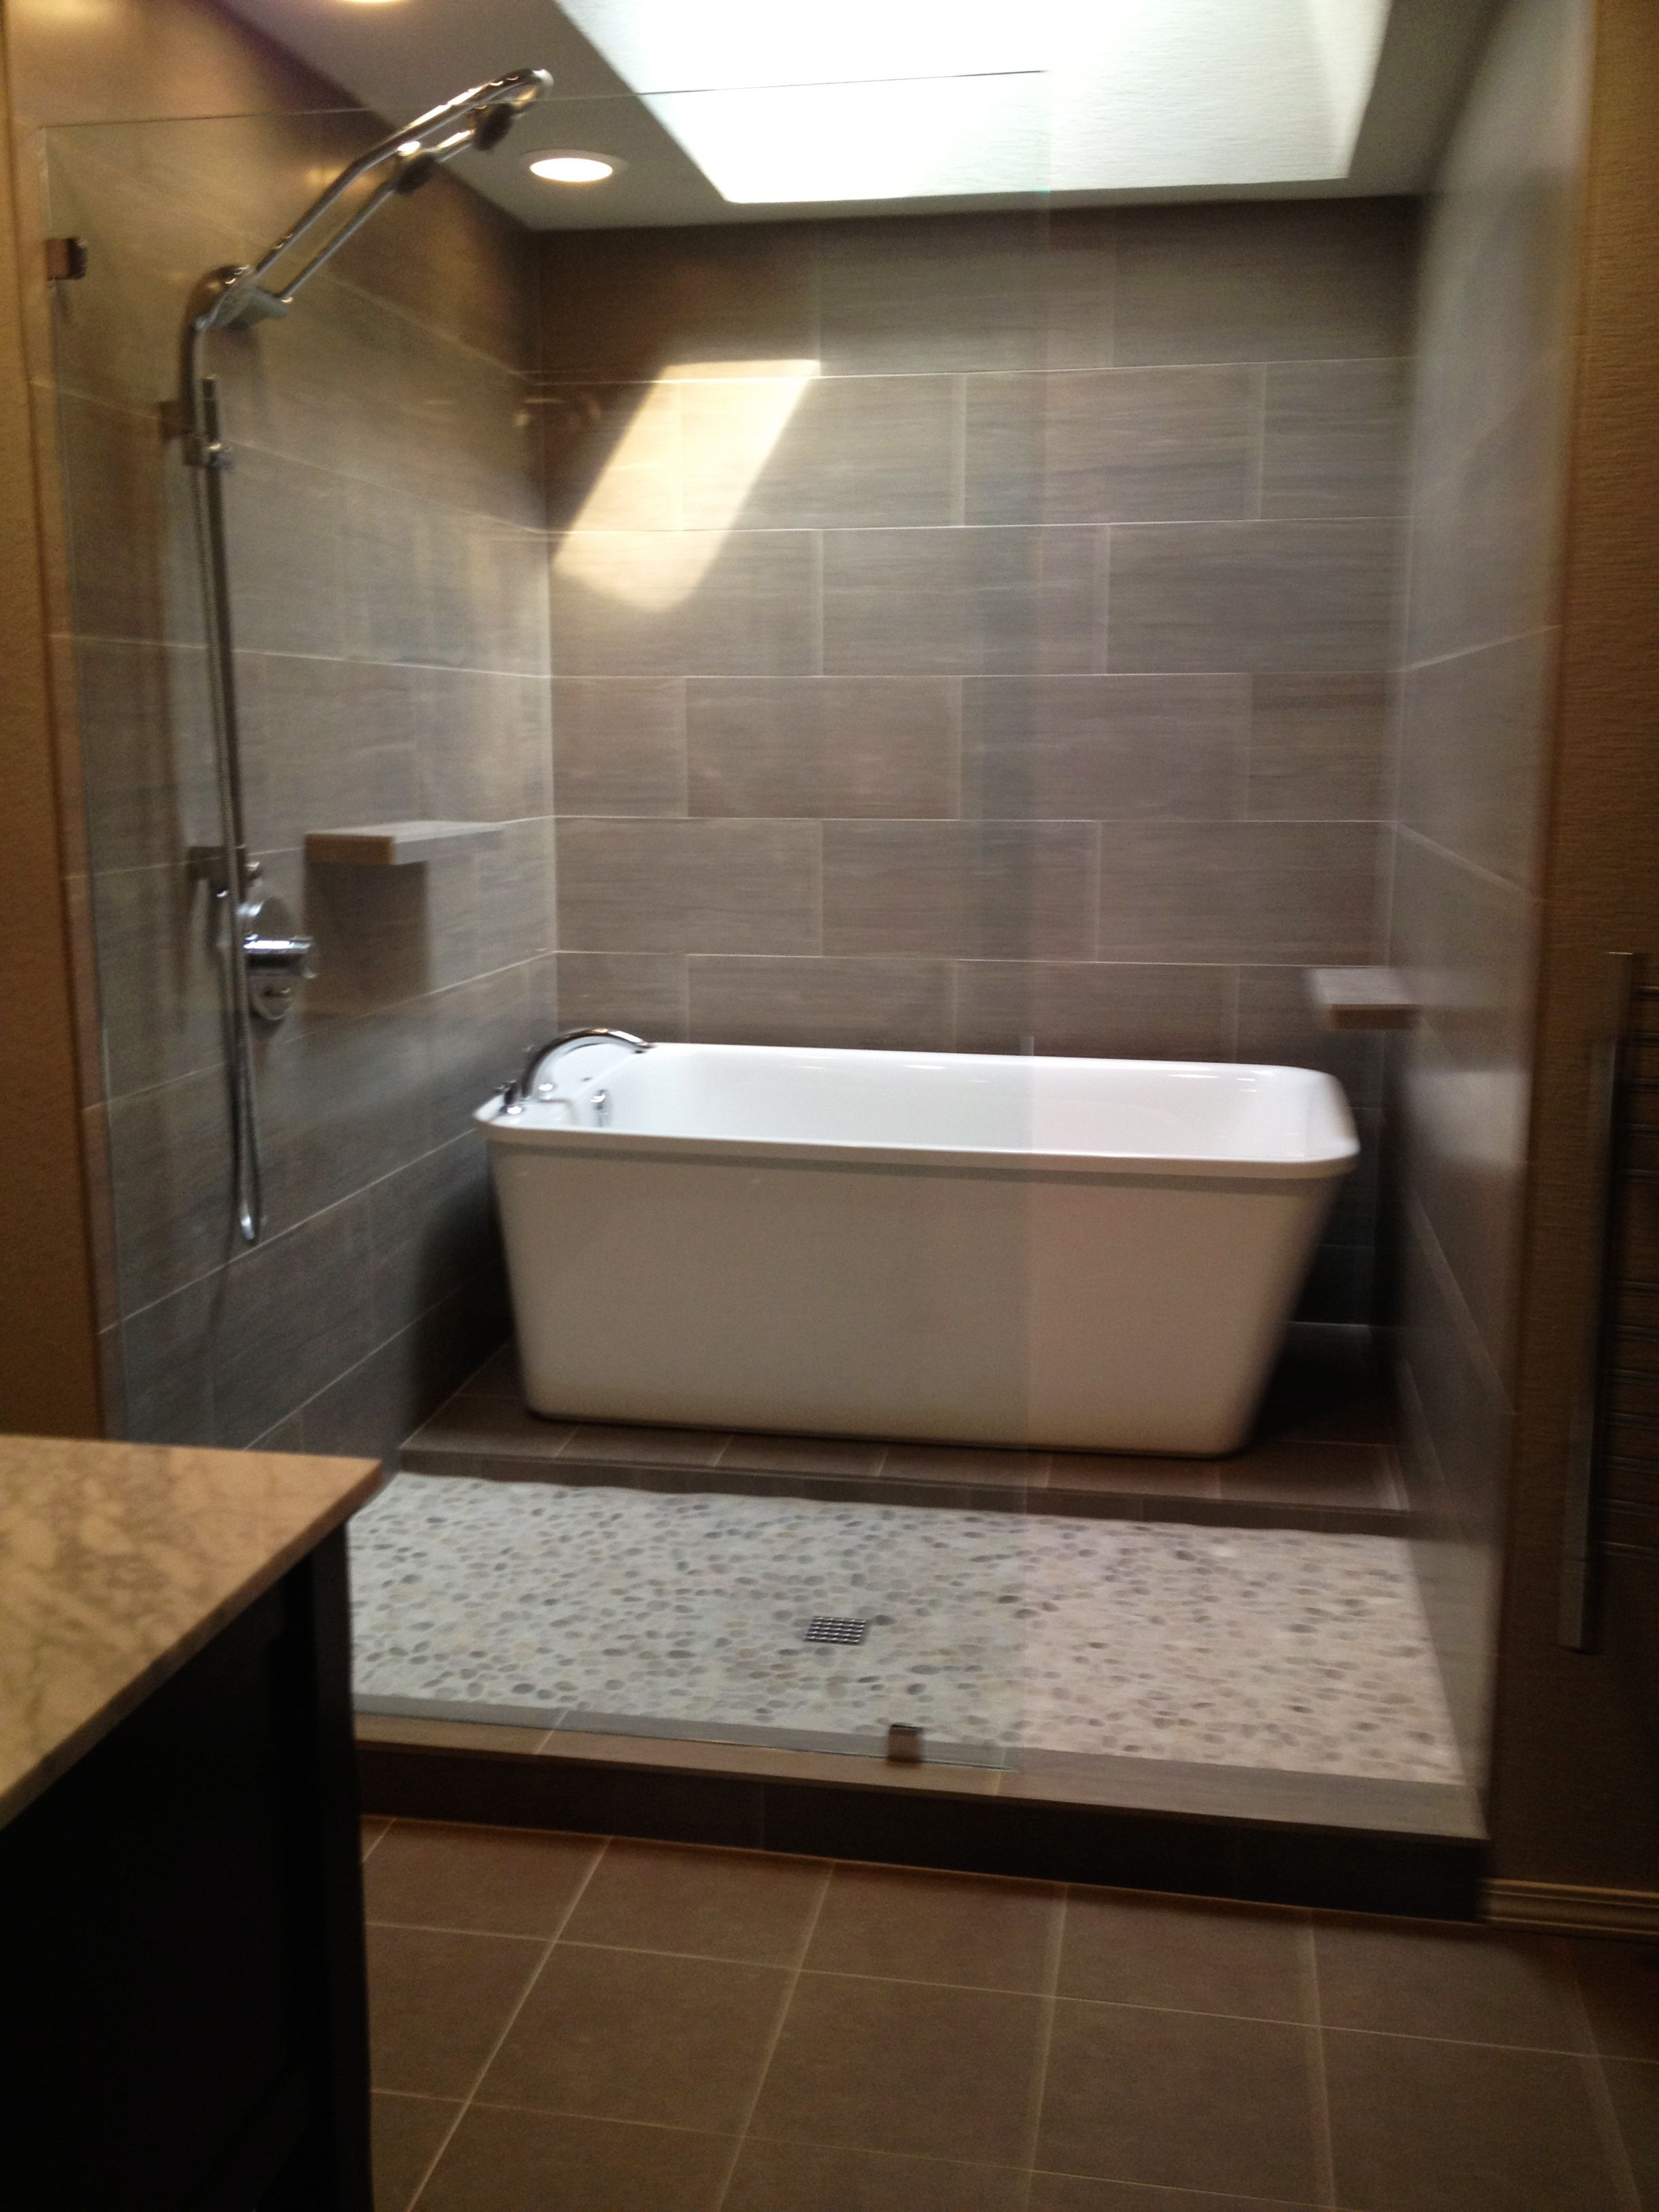 ARTEC Group Inc Interior Design And Remodeling Bathroom Remodel - Bathroom remodeling fort worth tx